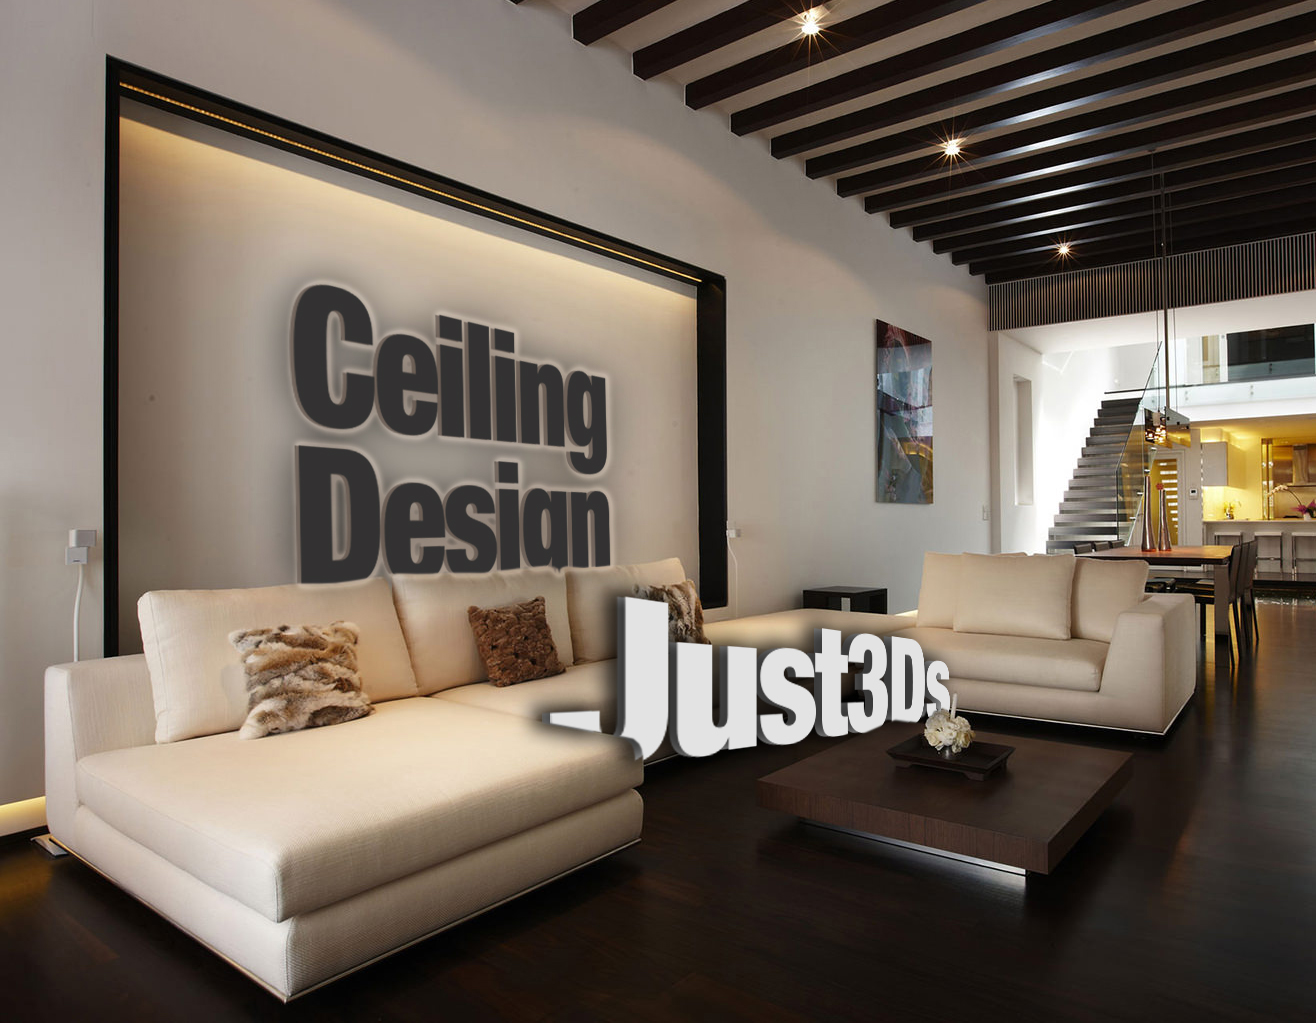 Ceiling-design-just3ds.com